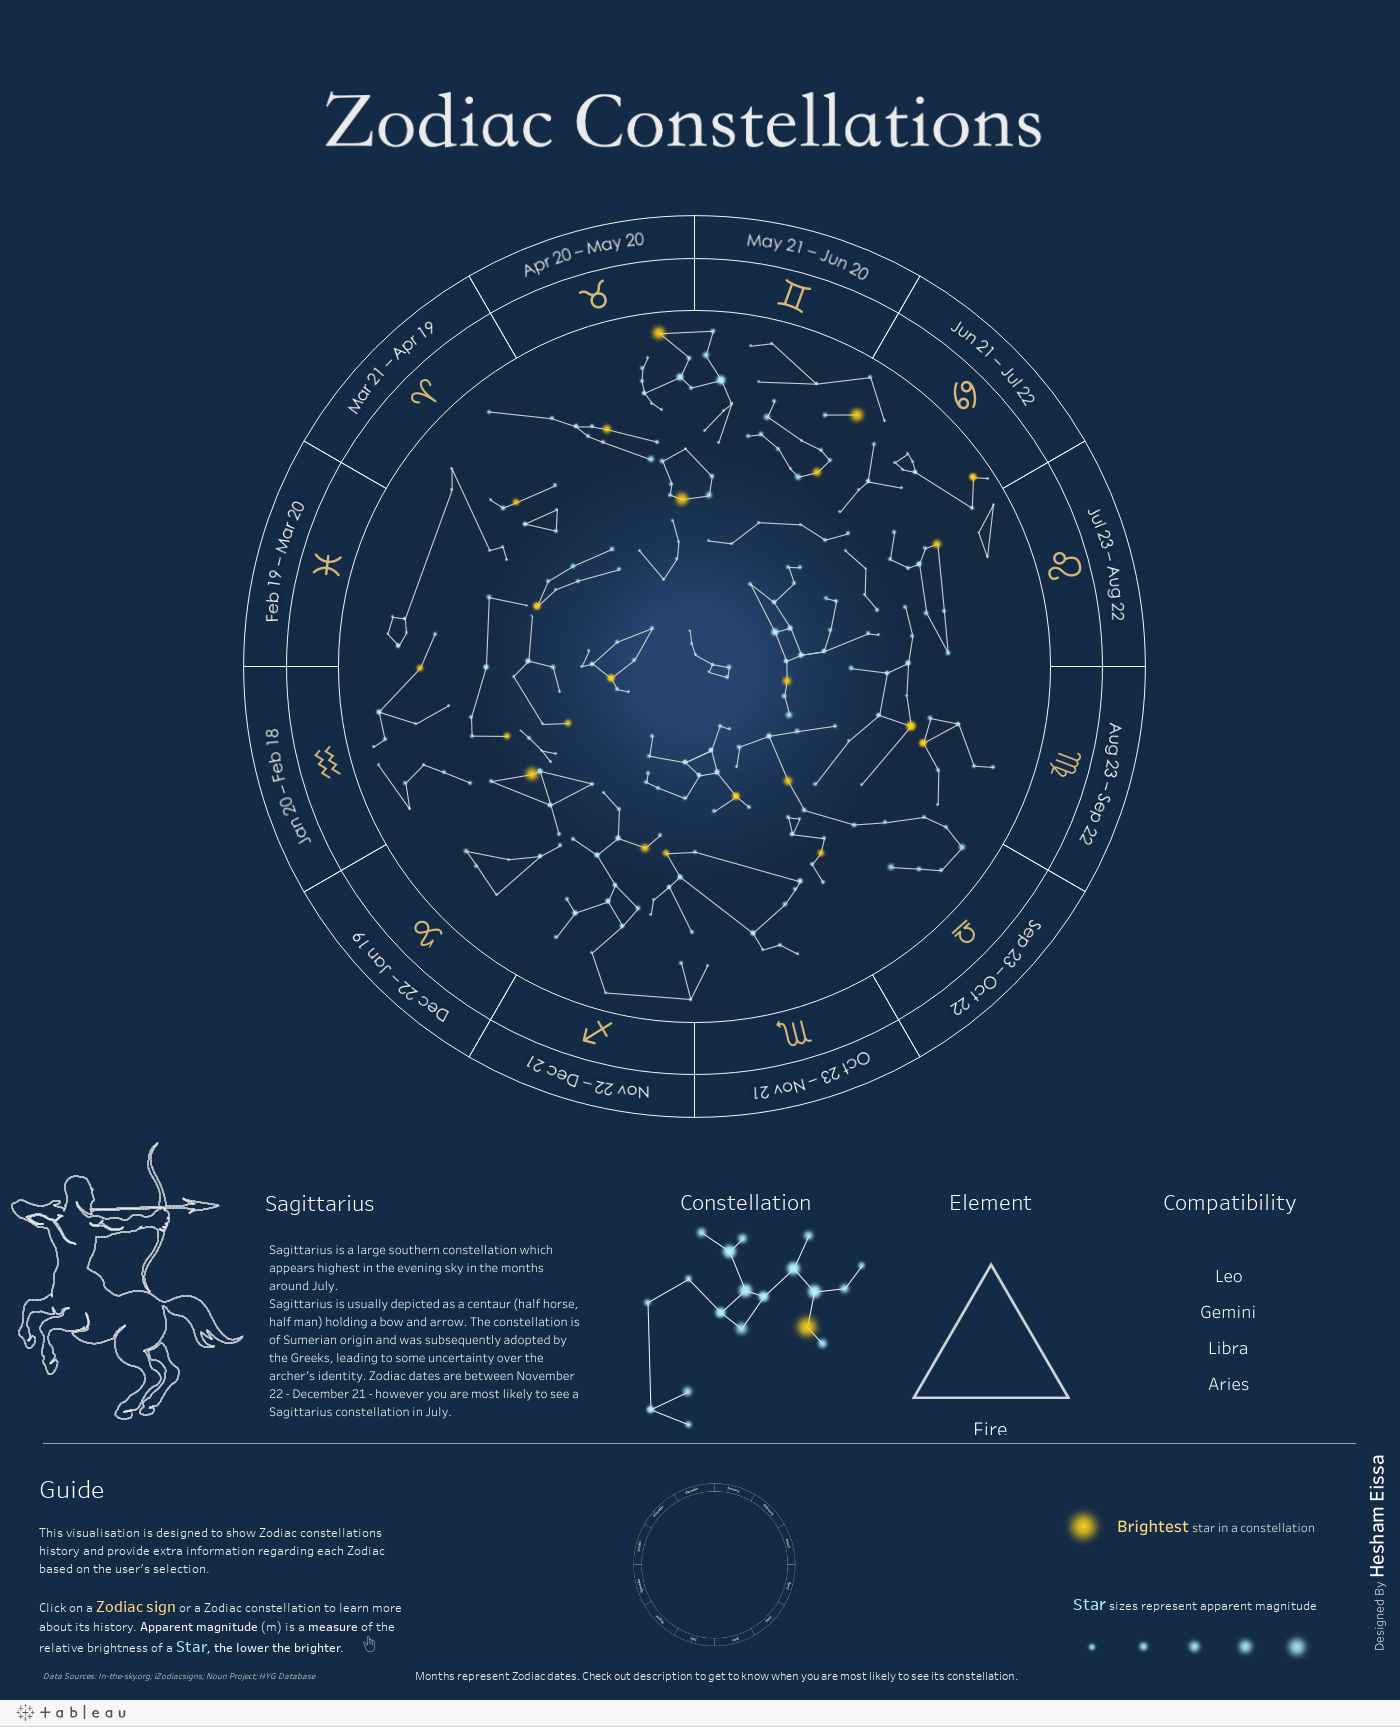 https://public.tableau.com/static/images/Zo/ZodiacConstellations/Dashboard/1.png